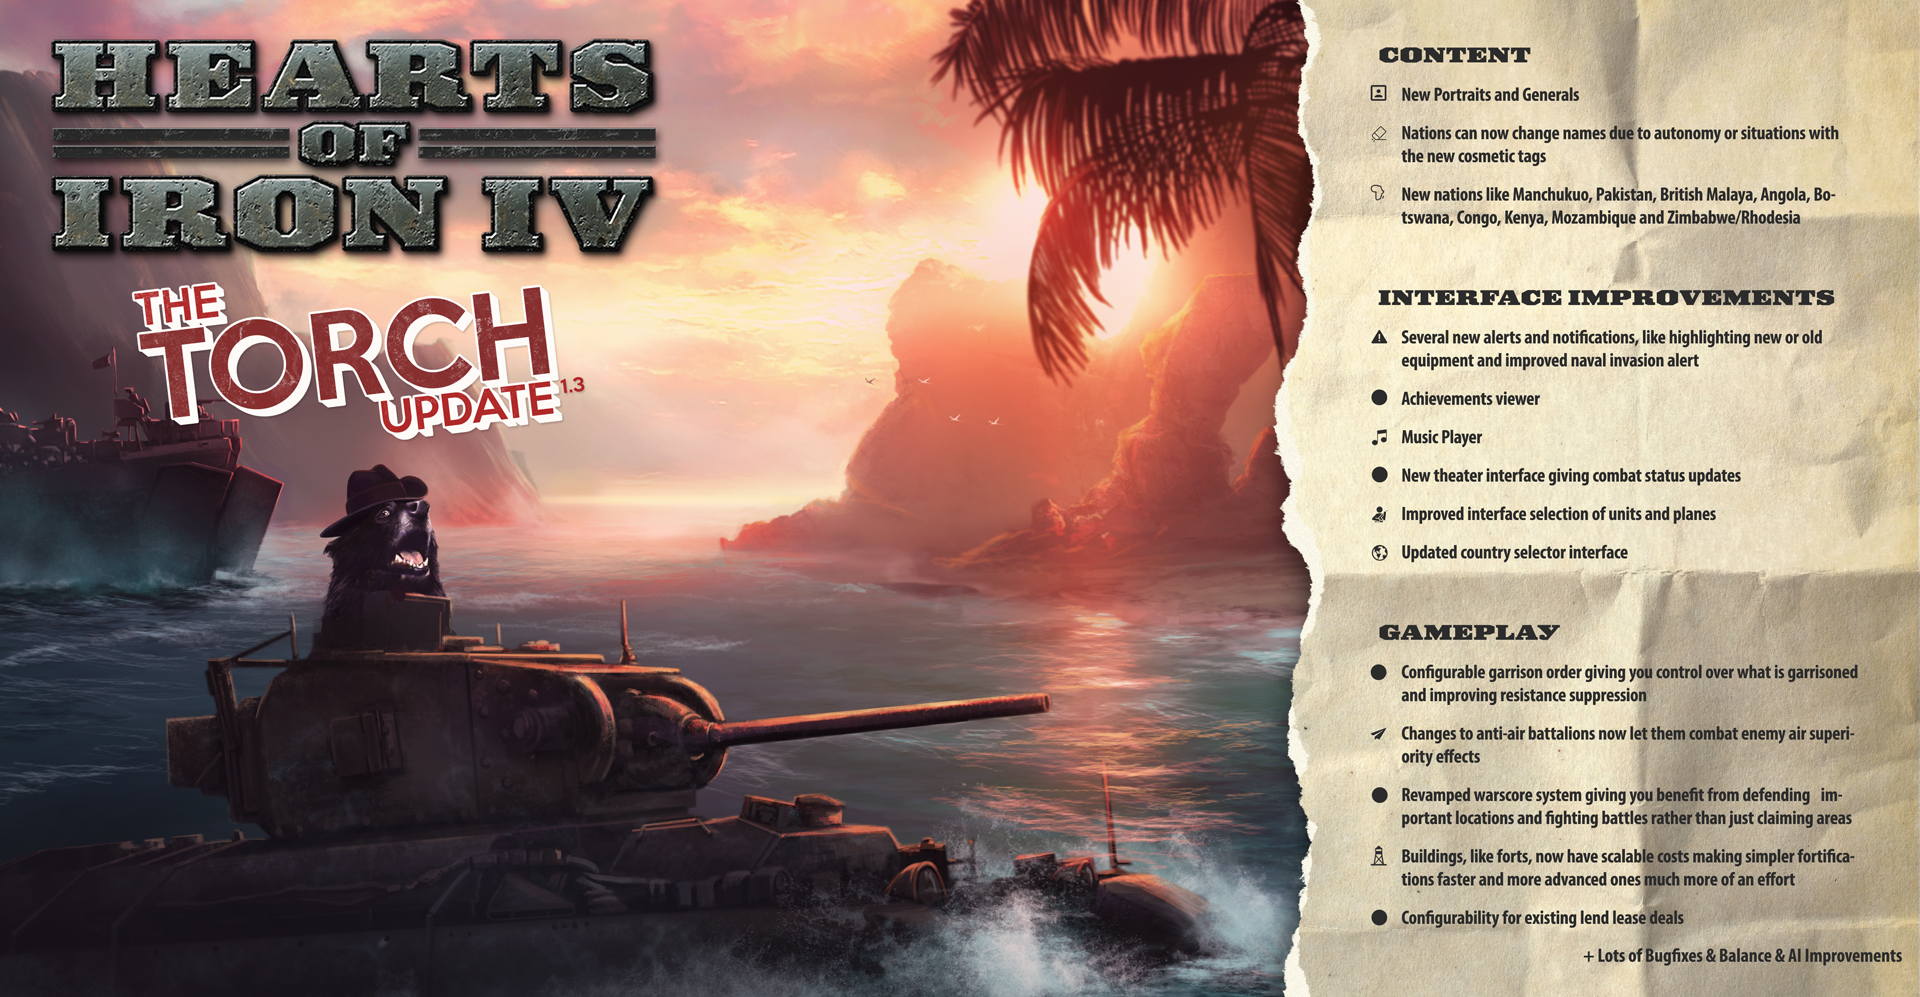 Hearts of Iron IV :: Patch 1 3 - Torch is live now!